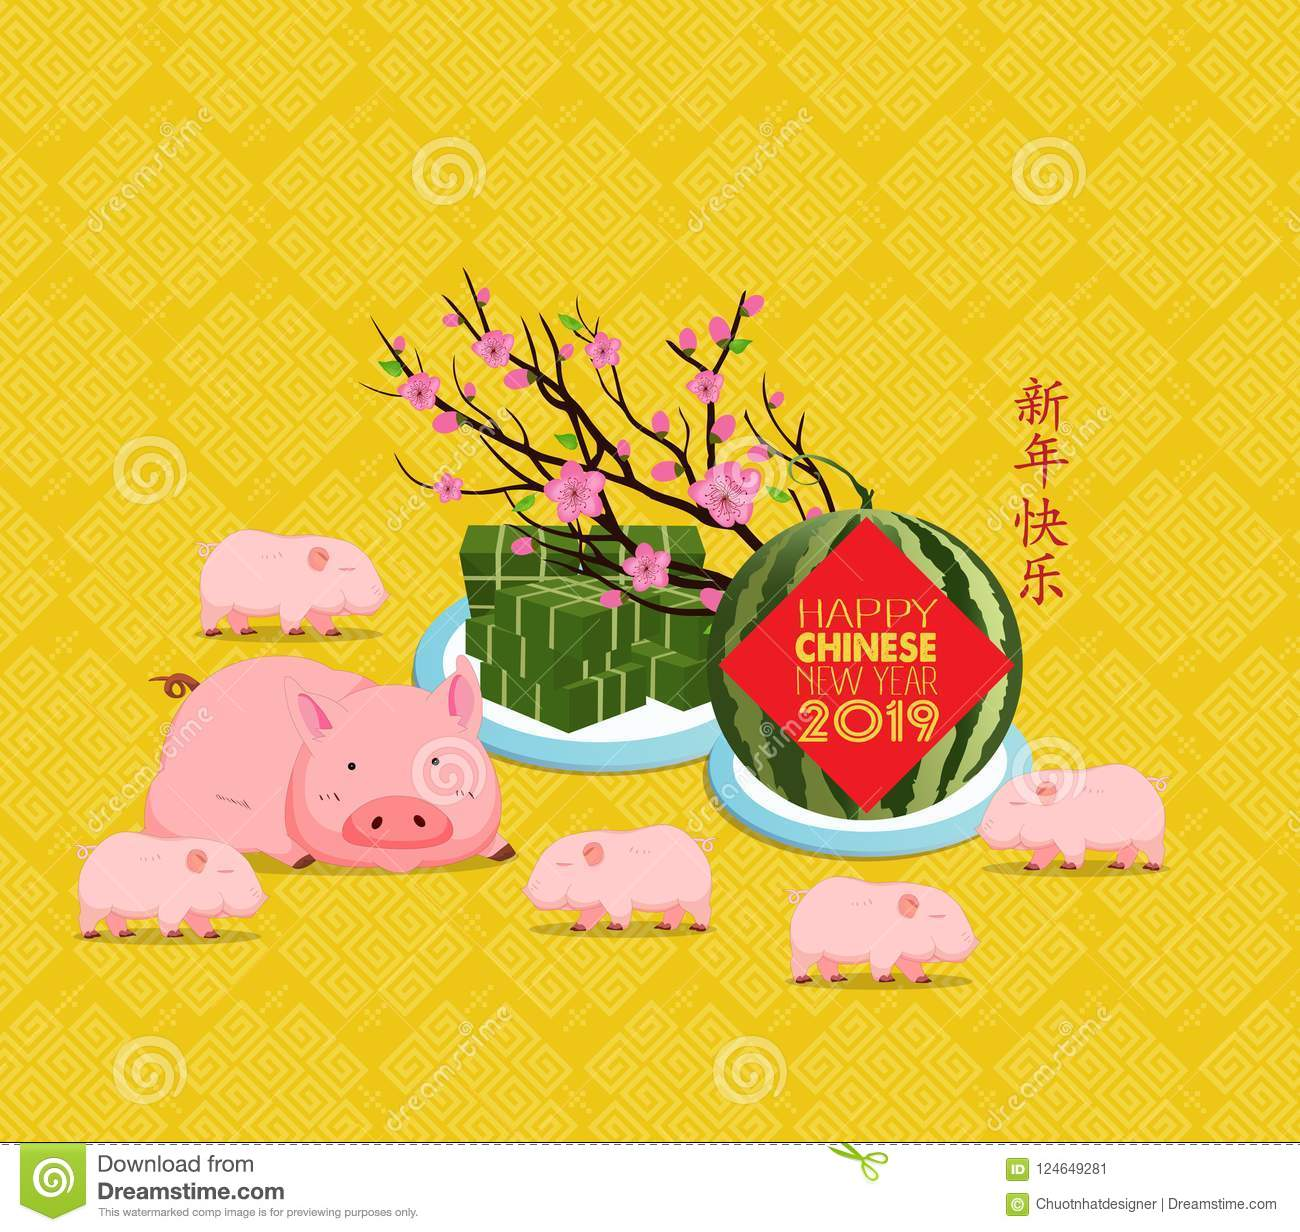 Happy Chinese New Year 2019 Text And Pig Zodiac And Cake Chinese